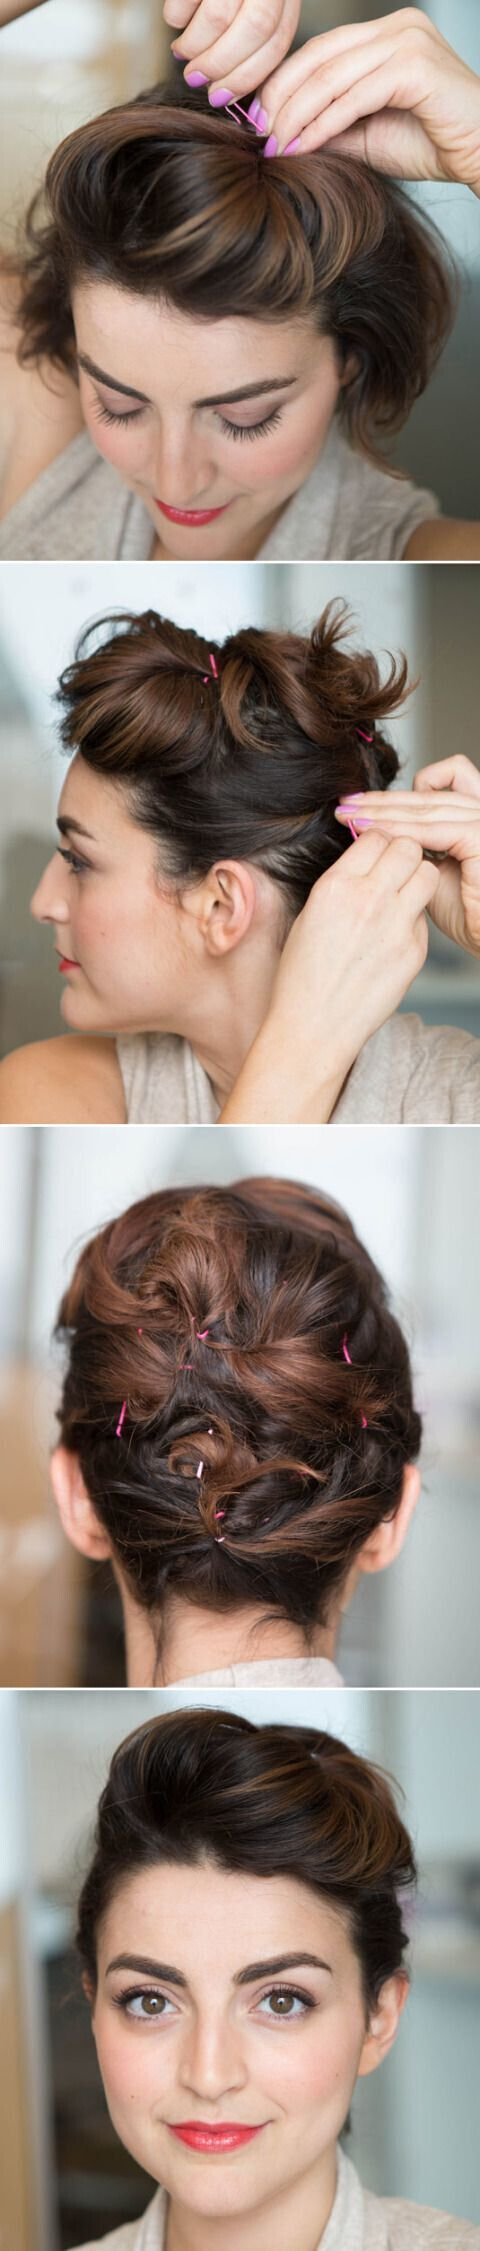 Updos Styling Ideas Just for Short Hair